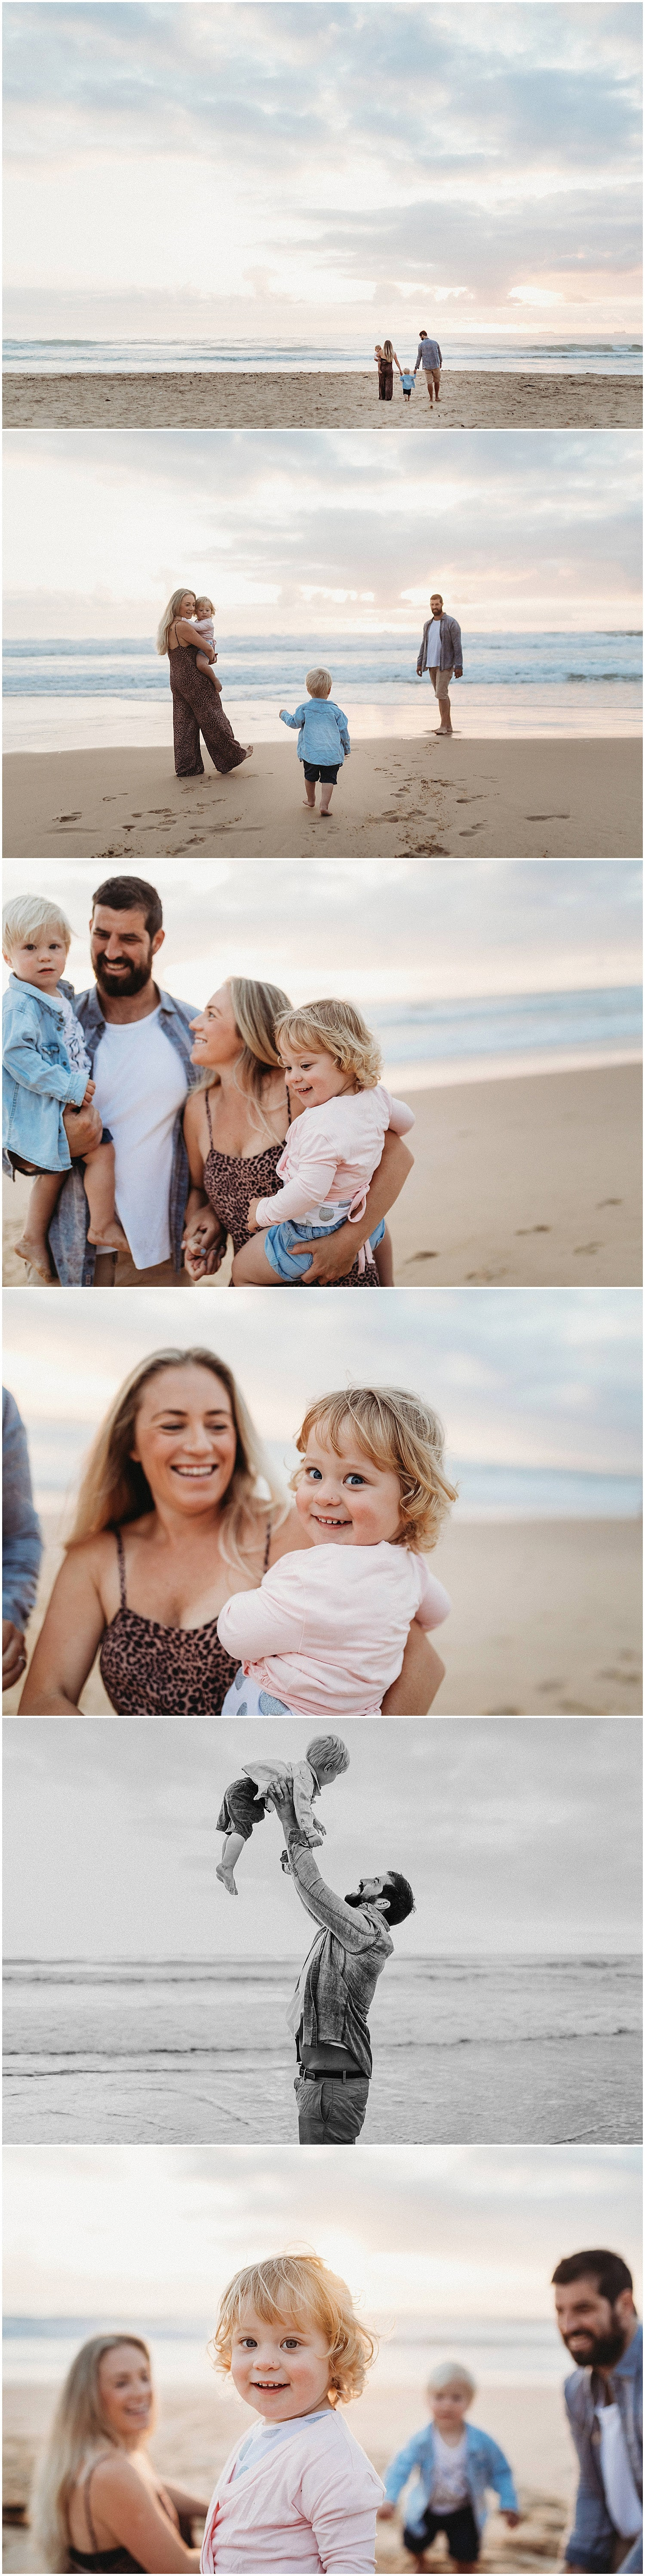 Twins_toddlers_Photography_at_the_beach_wollongong